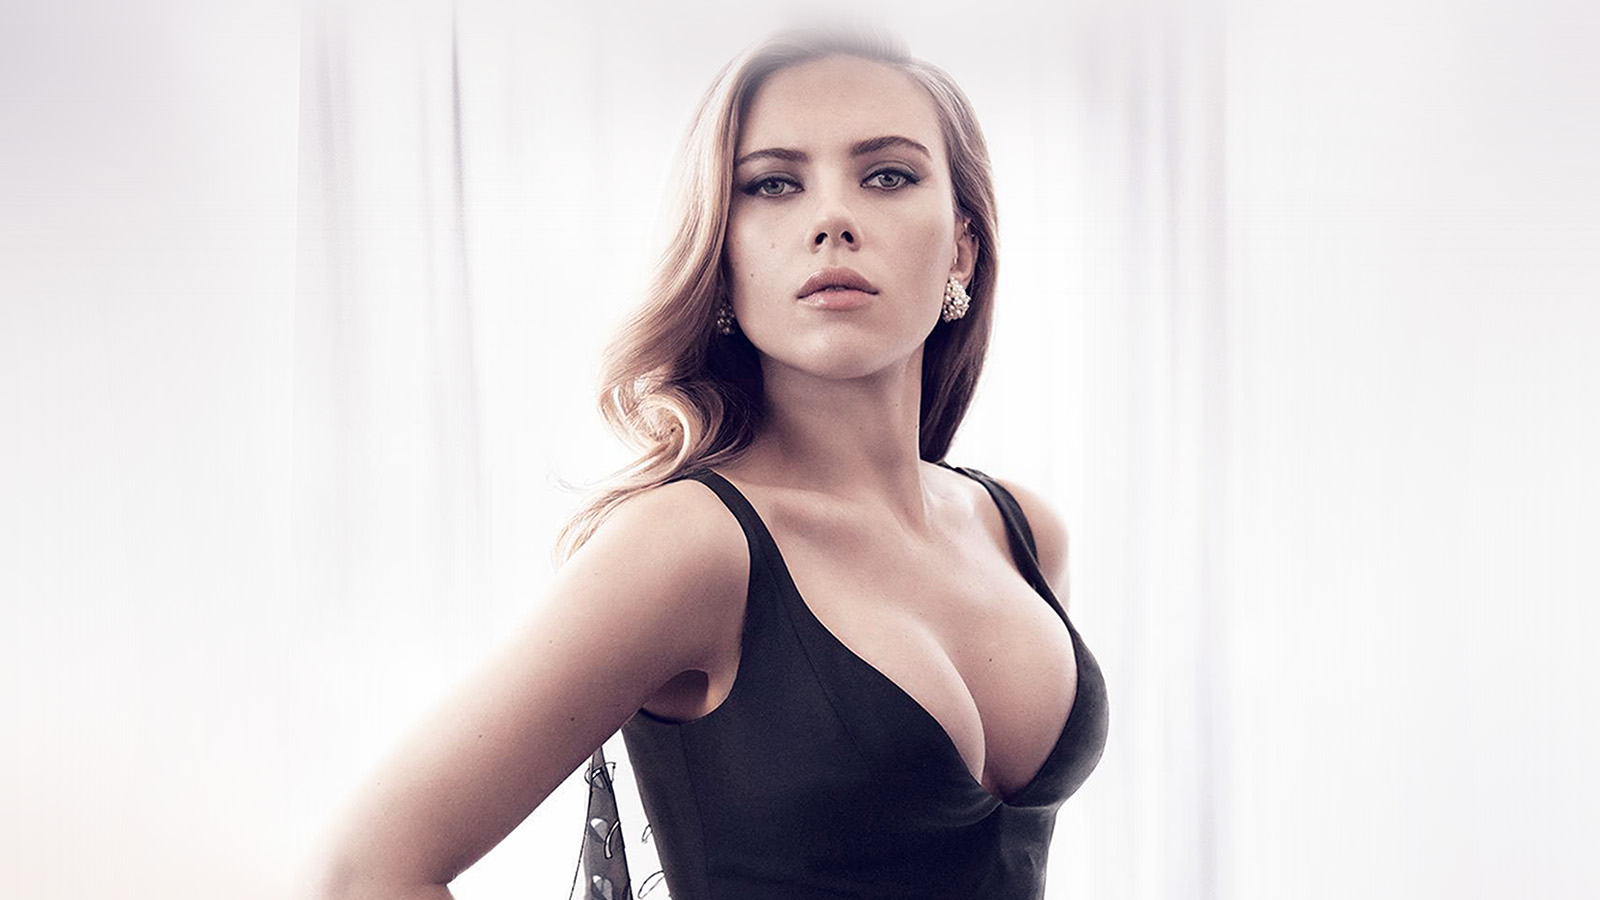 ho52 scarlett johansson girl film sexy hero wallpaper batman vs superman black and white logo batman logo black and white drawing